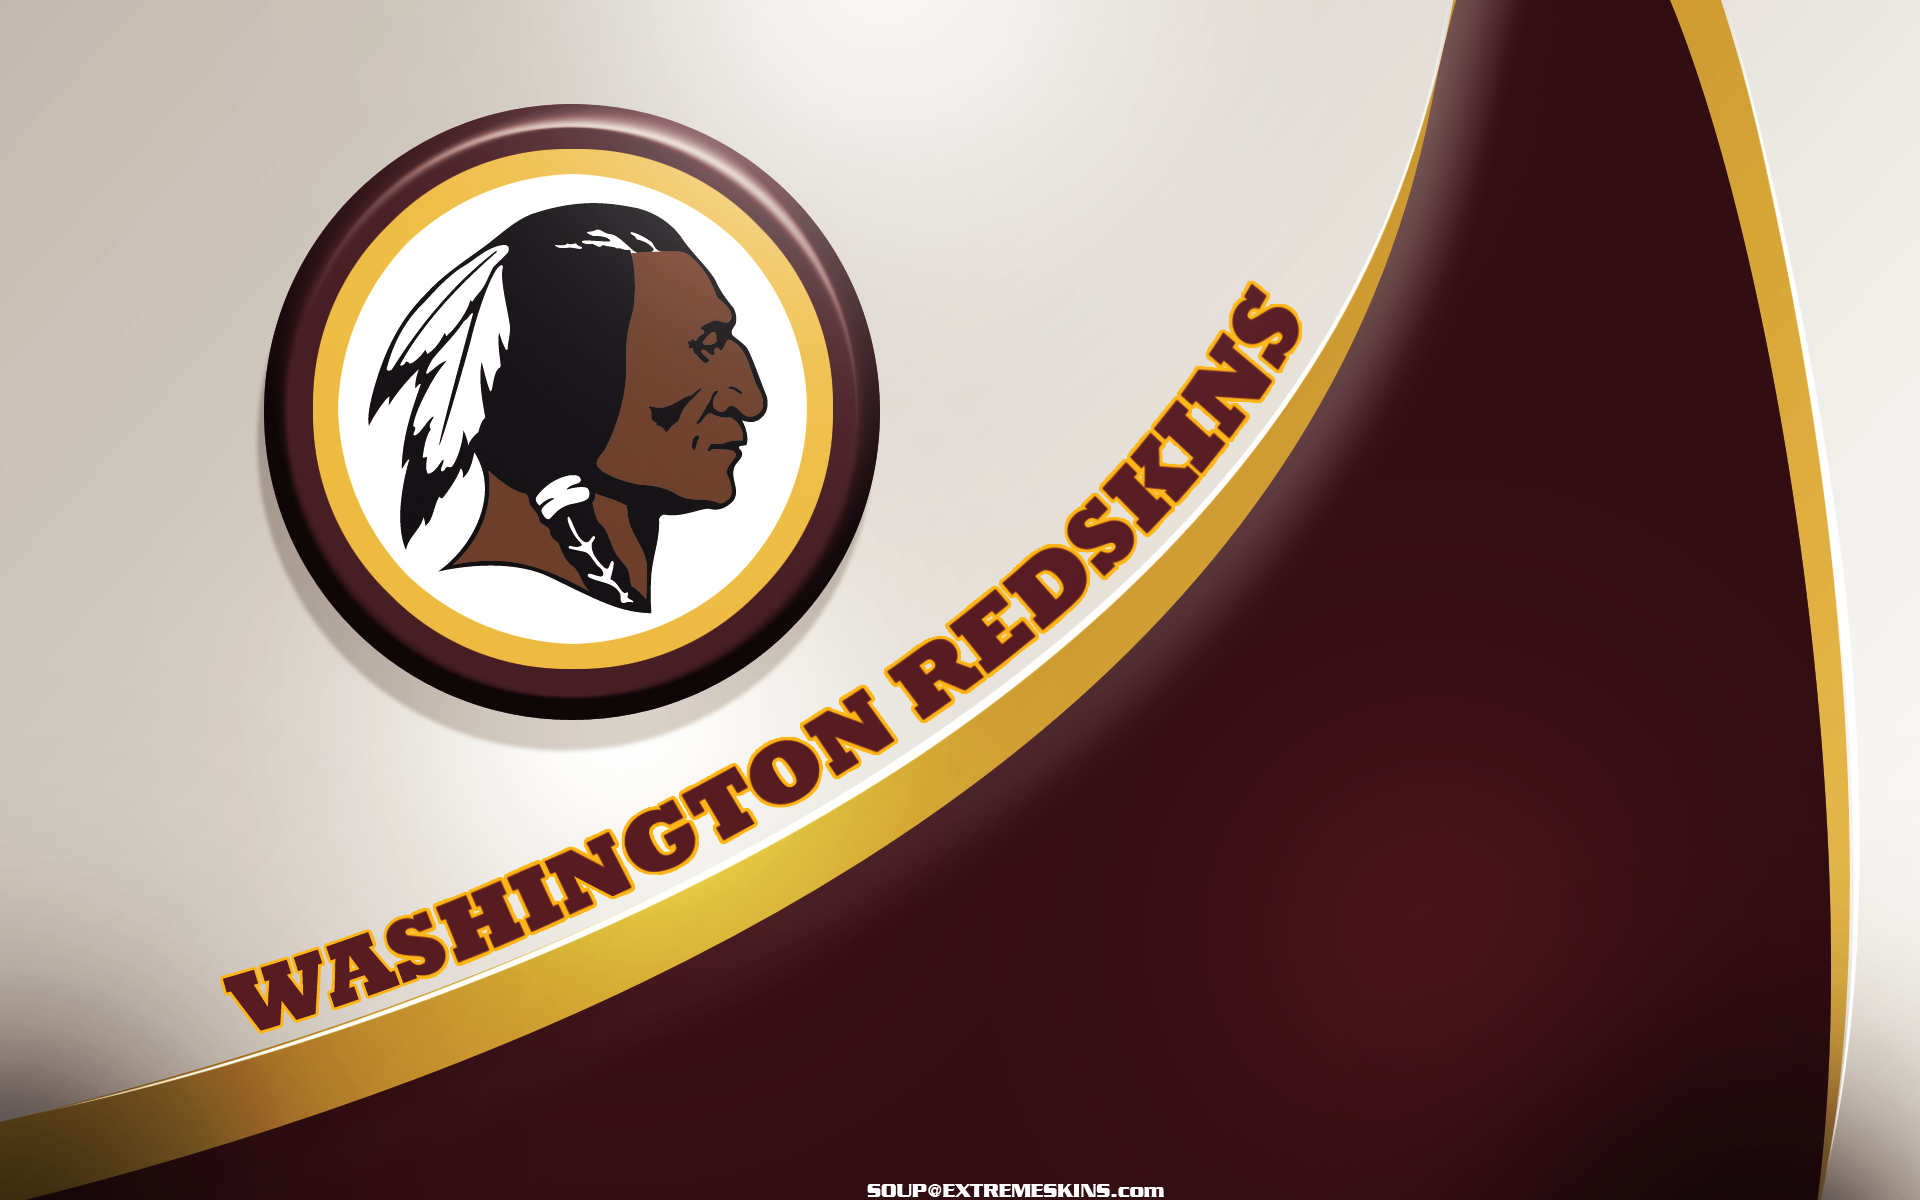 Redskins Wallpapers, FHDQ Pictures